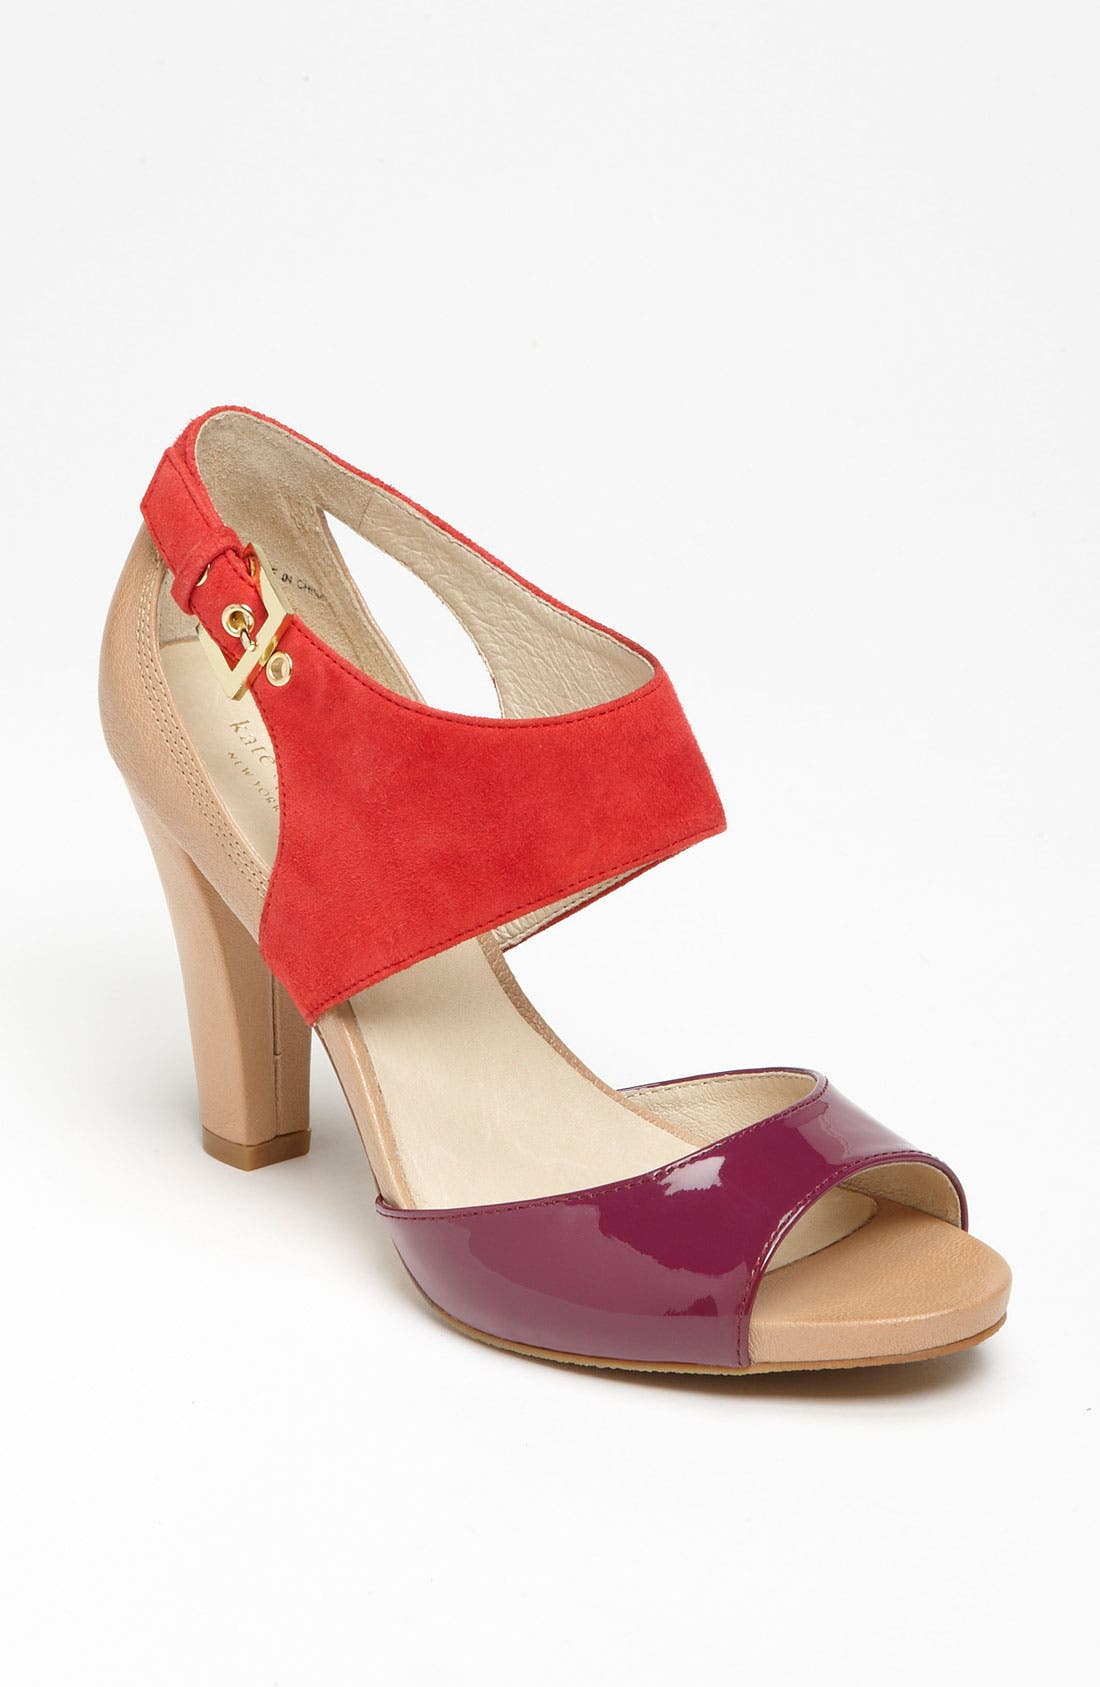 Alternate Image 1 Selected - kate spade new york 'reena' sandal